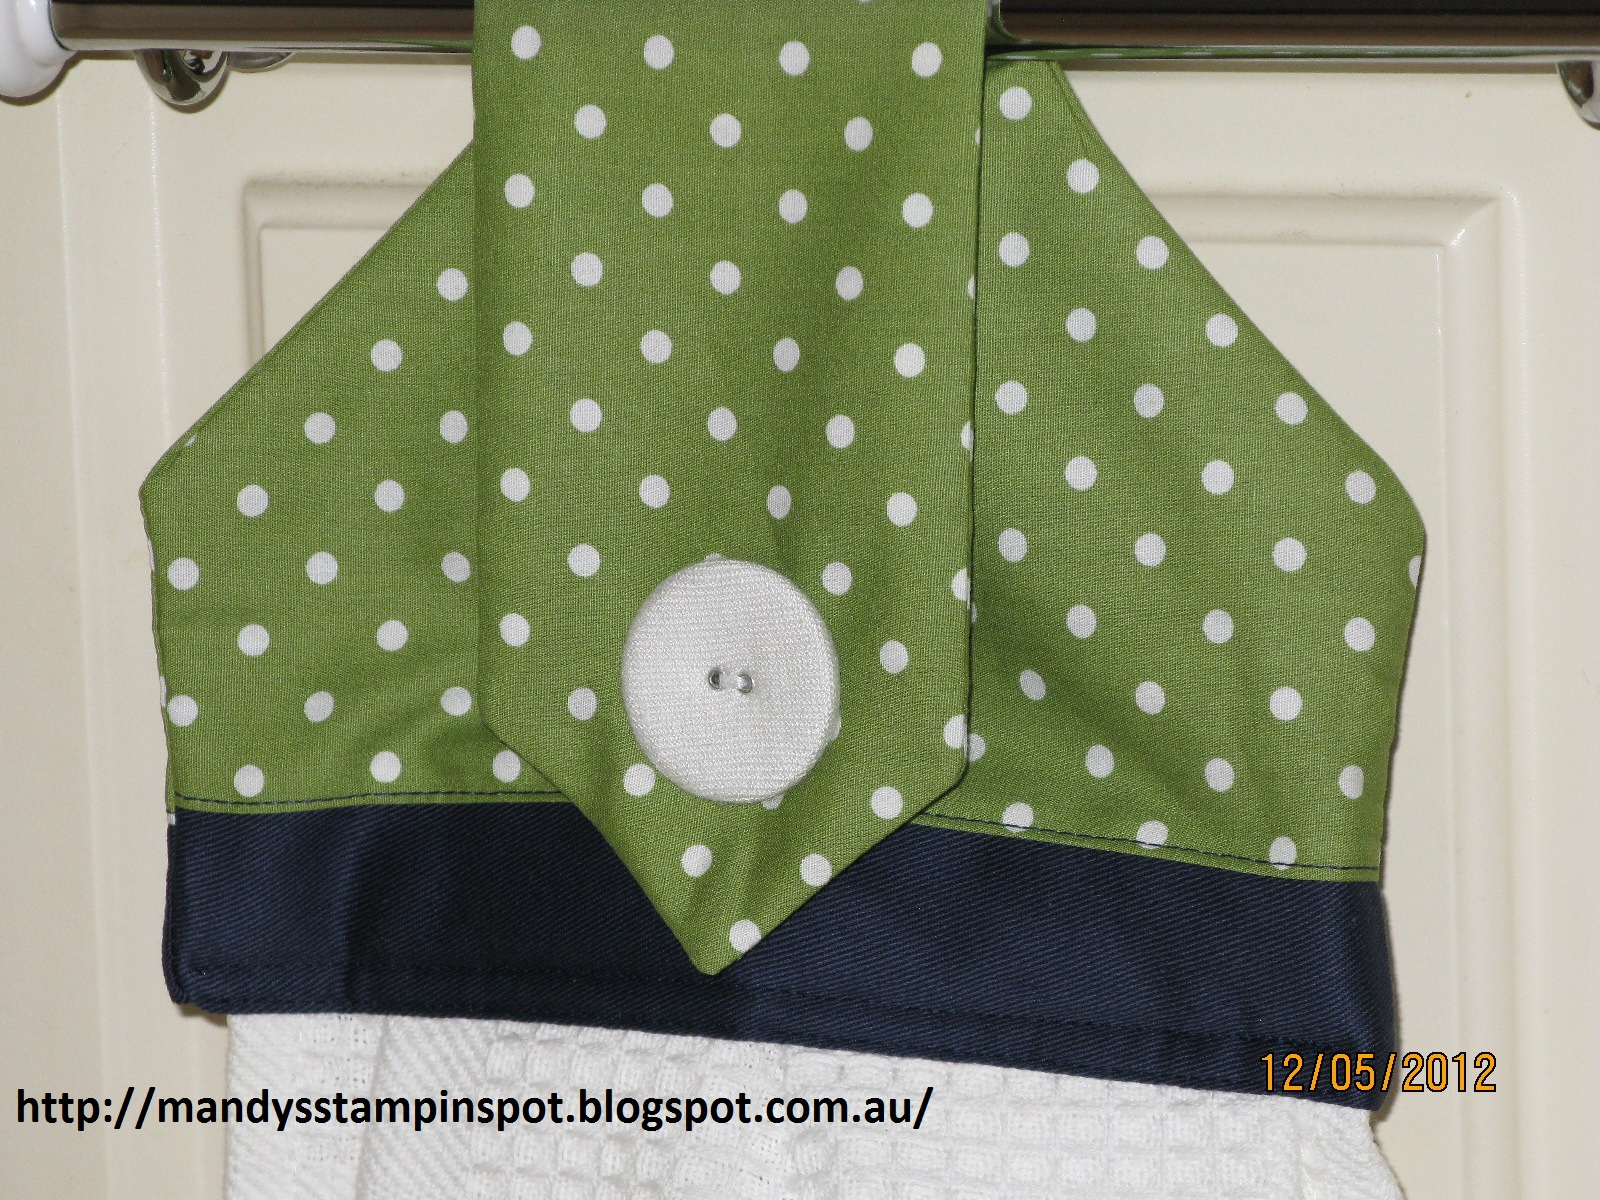 Mandy's Stampin Spot: Sewing - Hanging Hand Towel